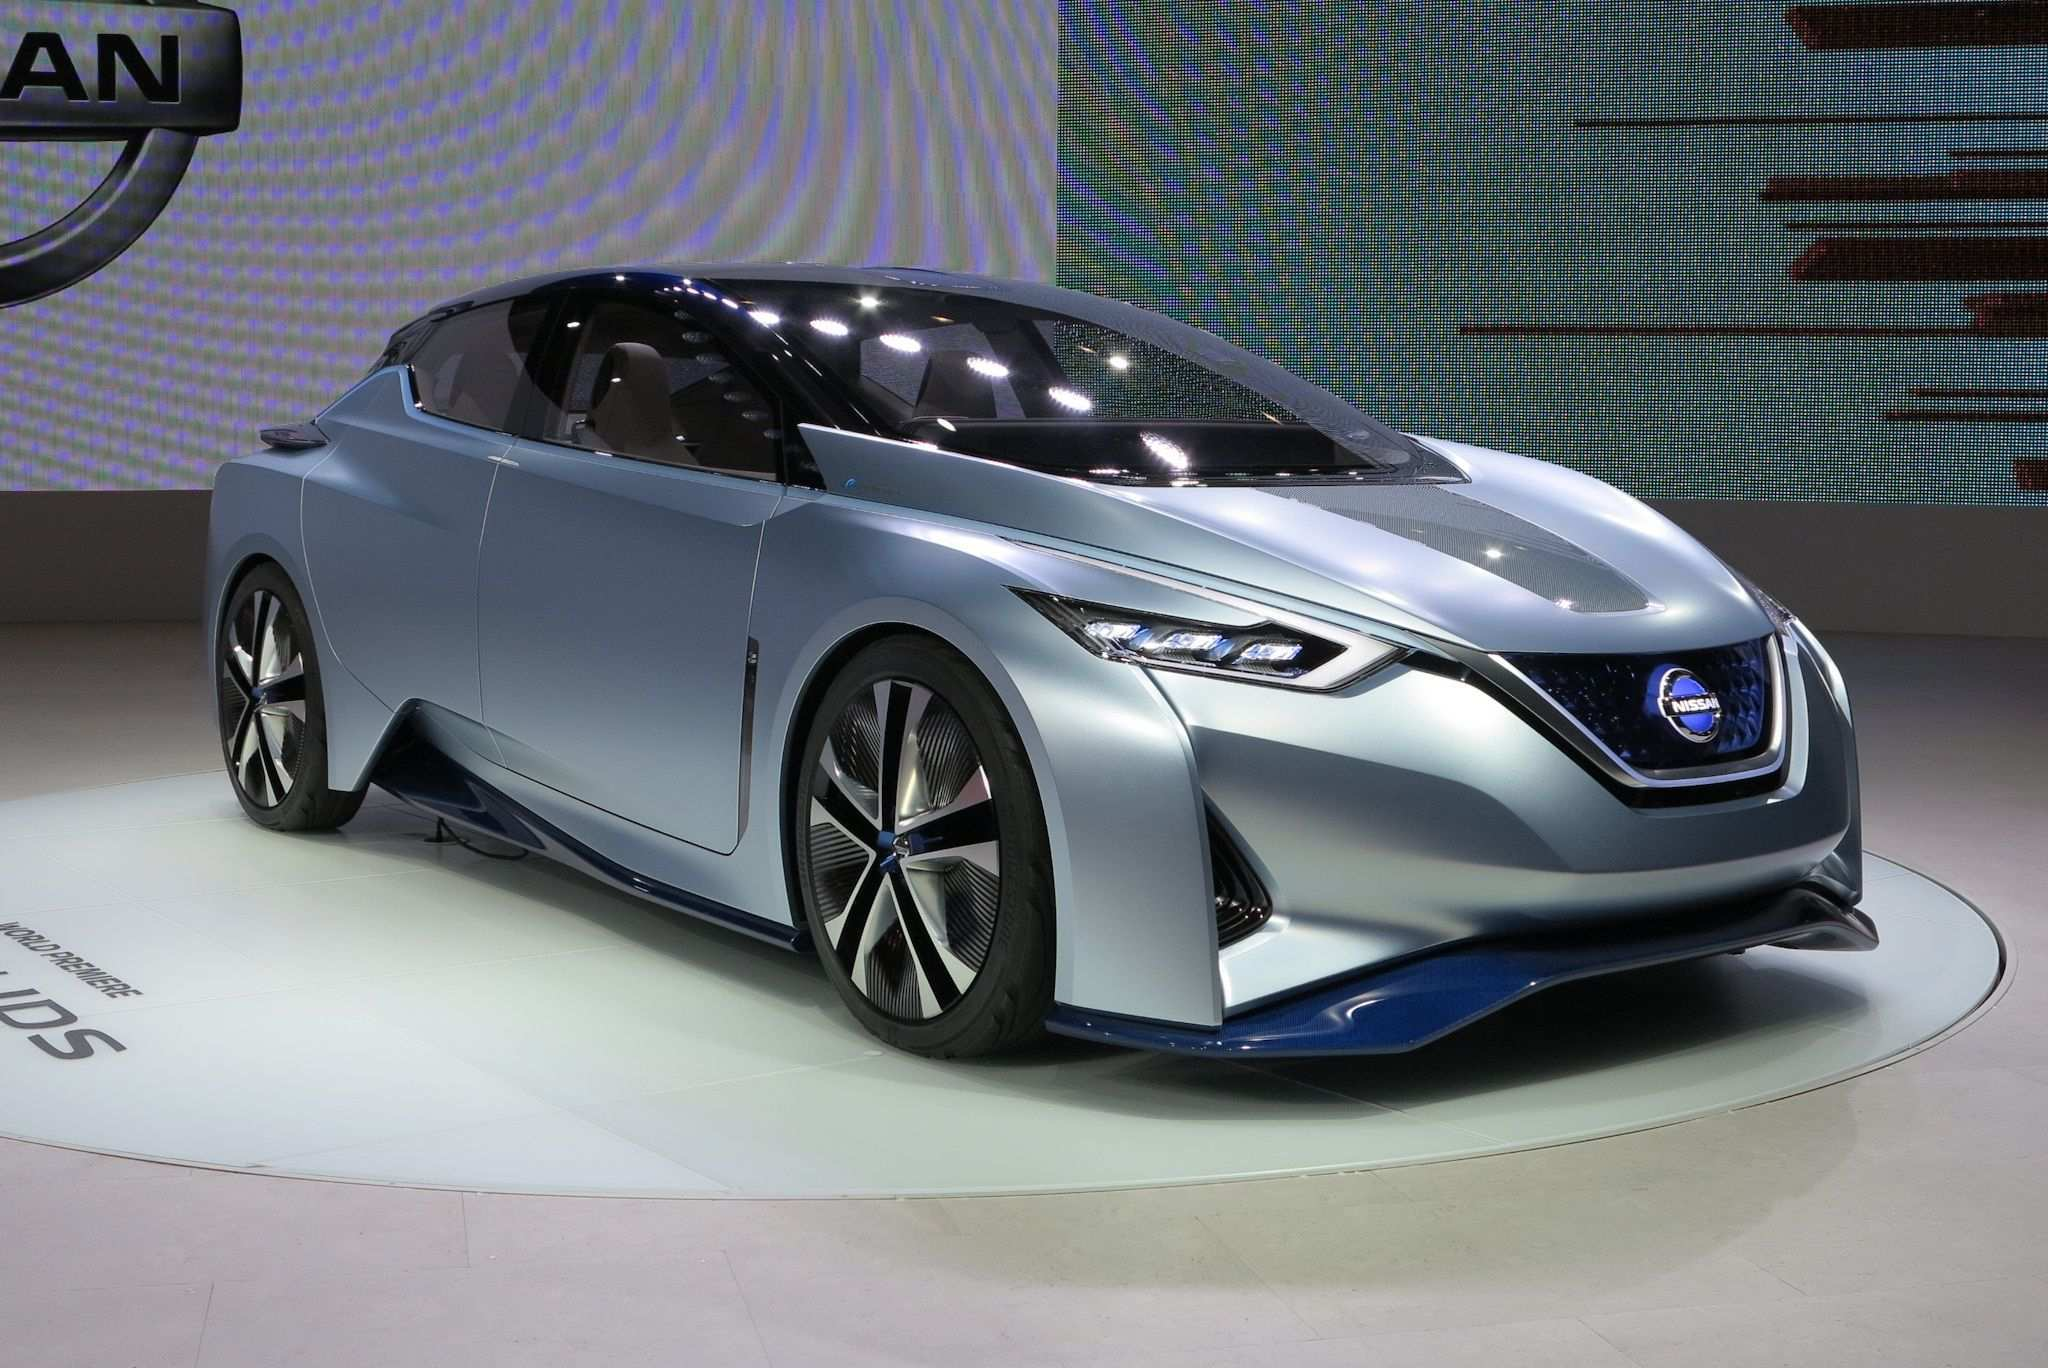 18 Concept of 2020 Nissan Leaf Range Redesign with 2020 Nissan Leaf Range